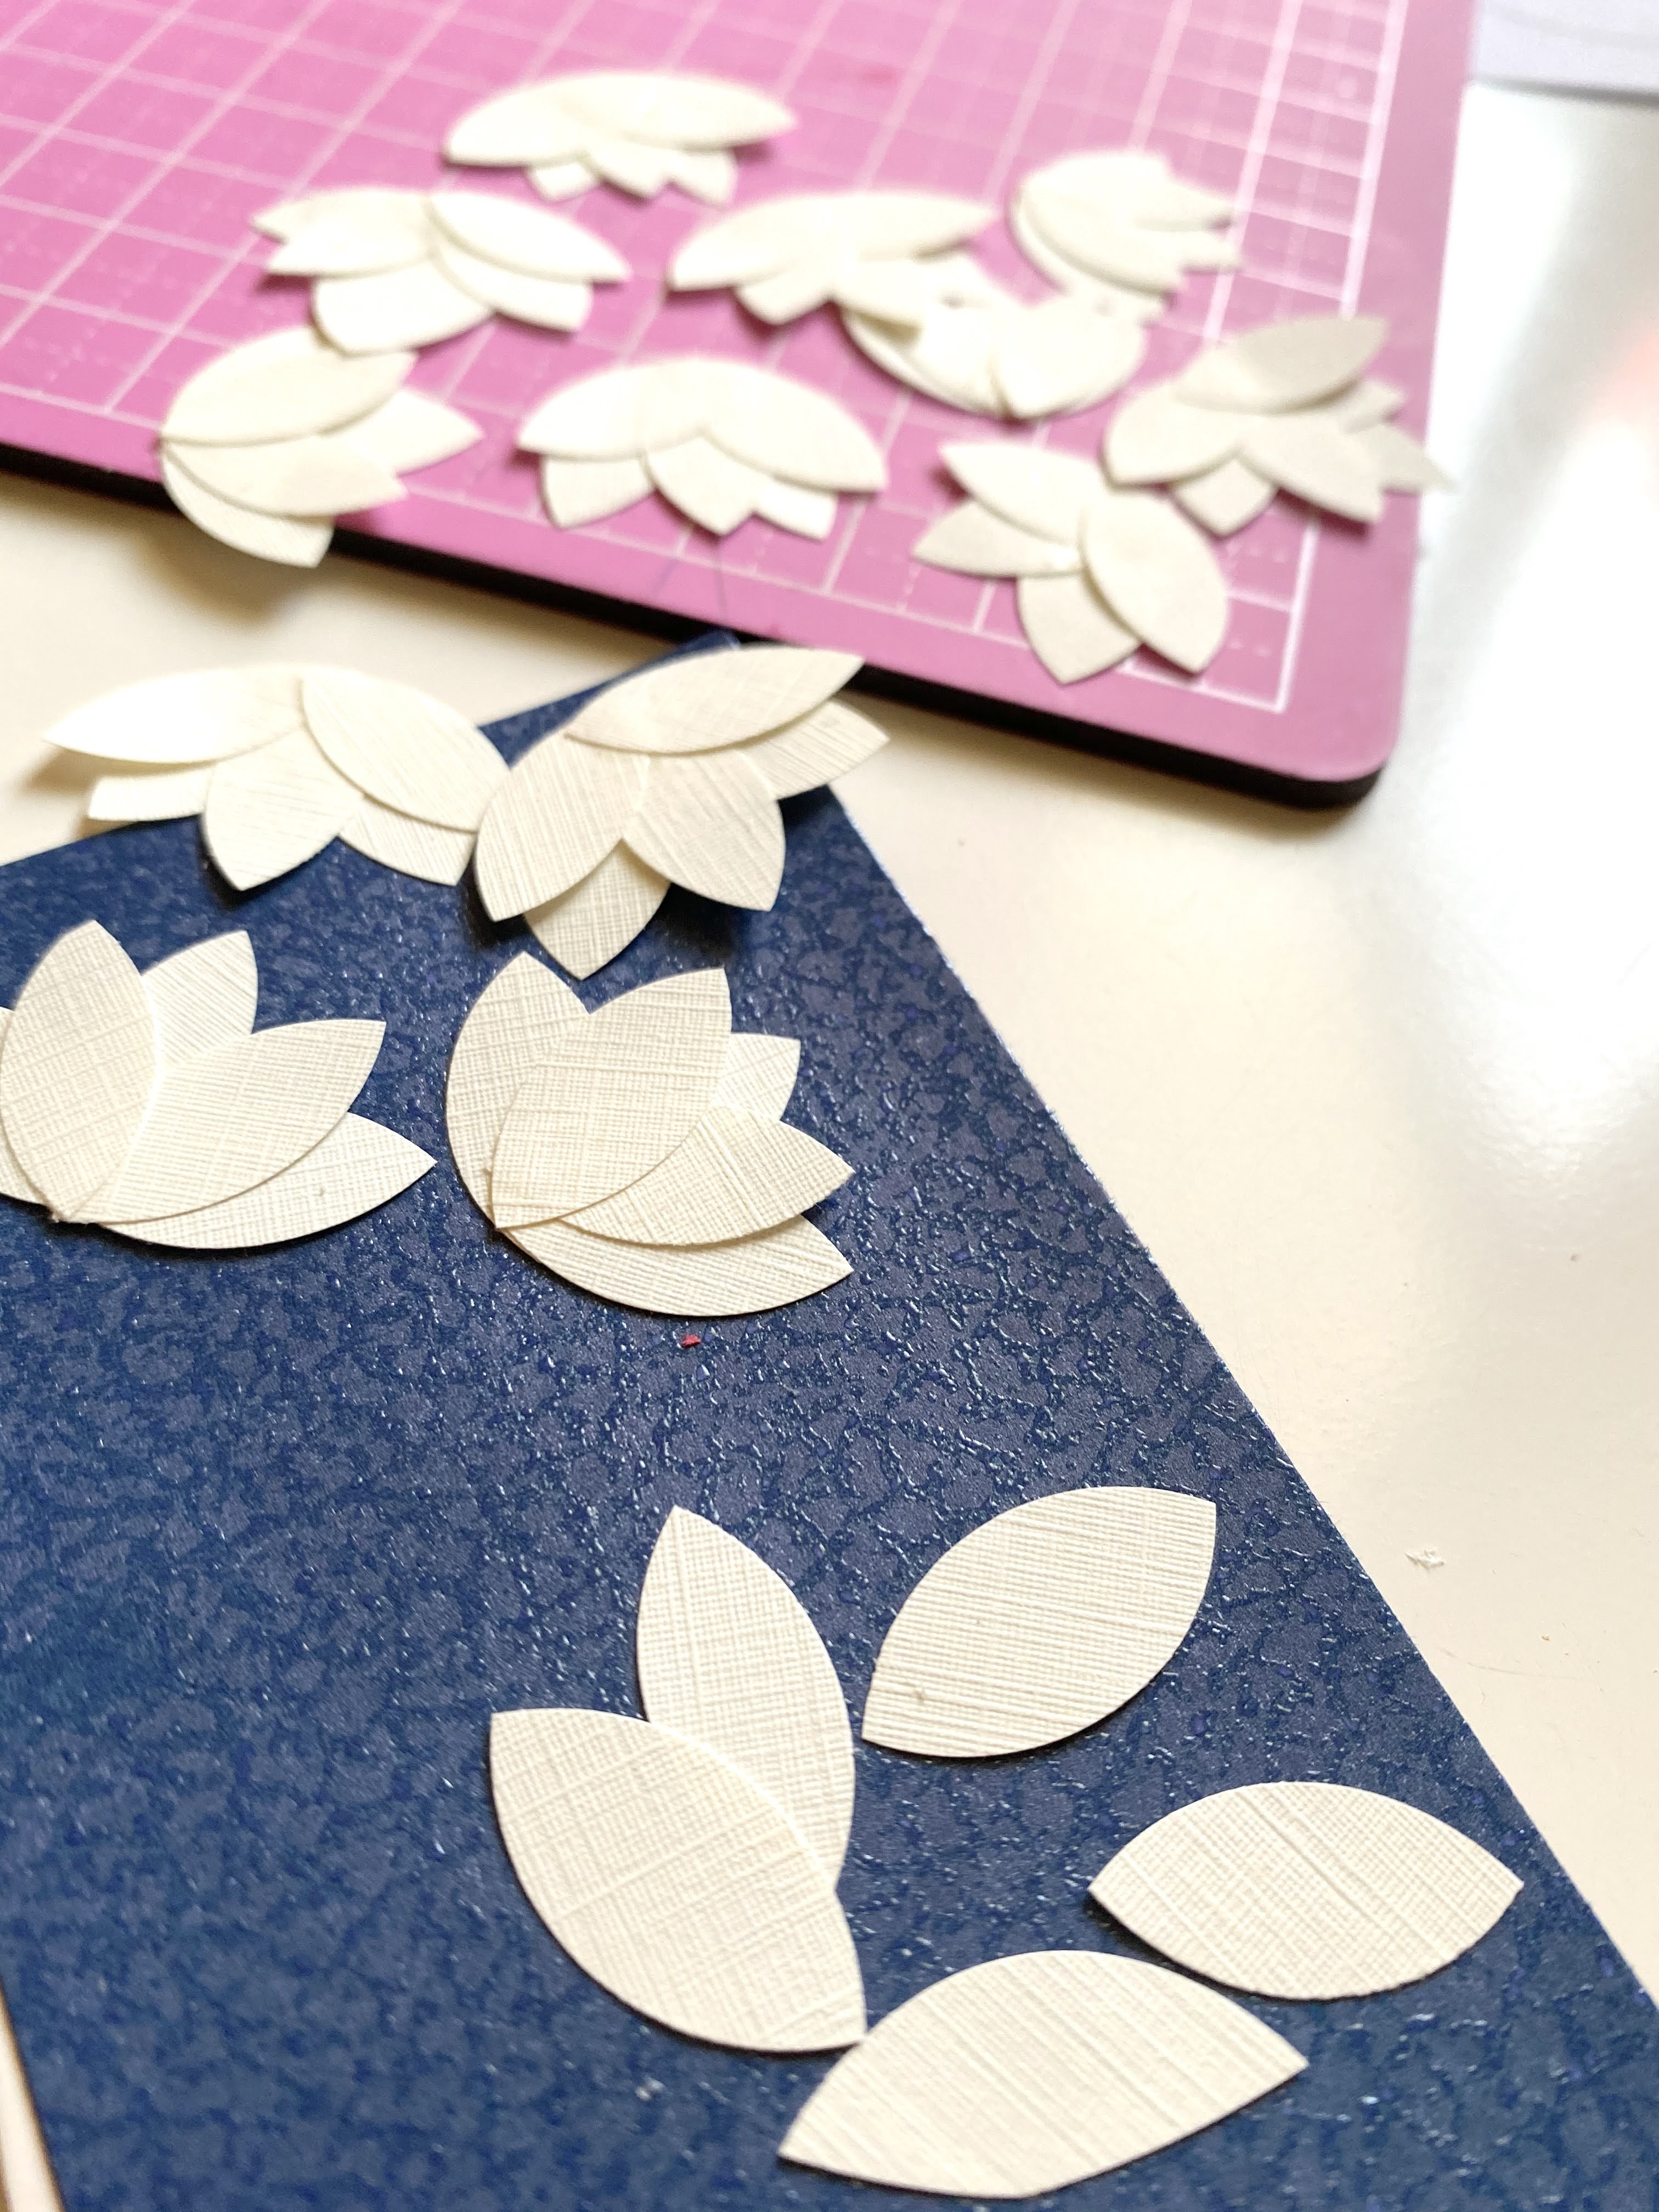 Making magnolia flowers out of textured resume paper for a homemade card.